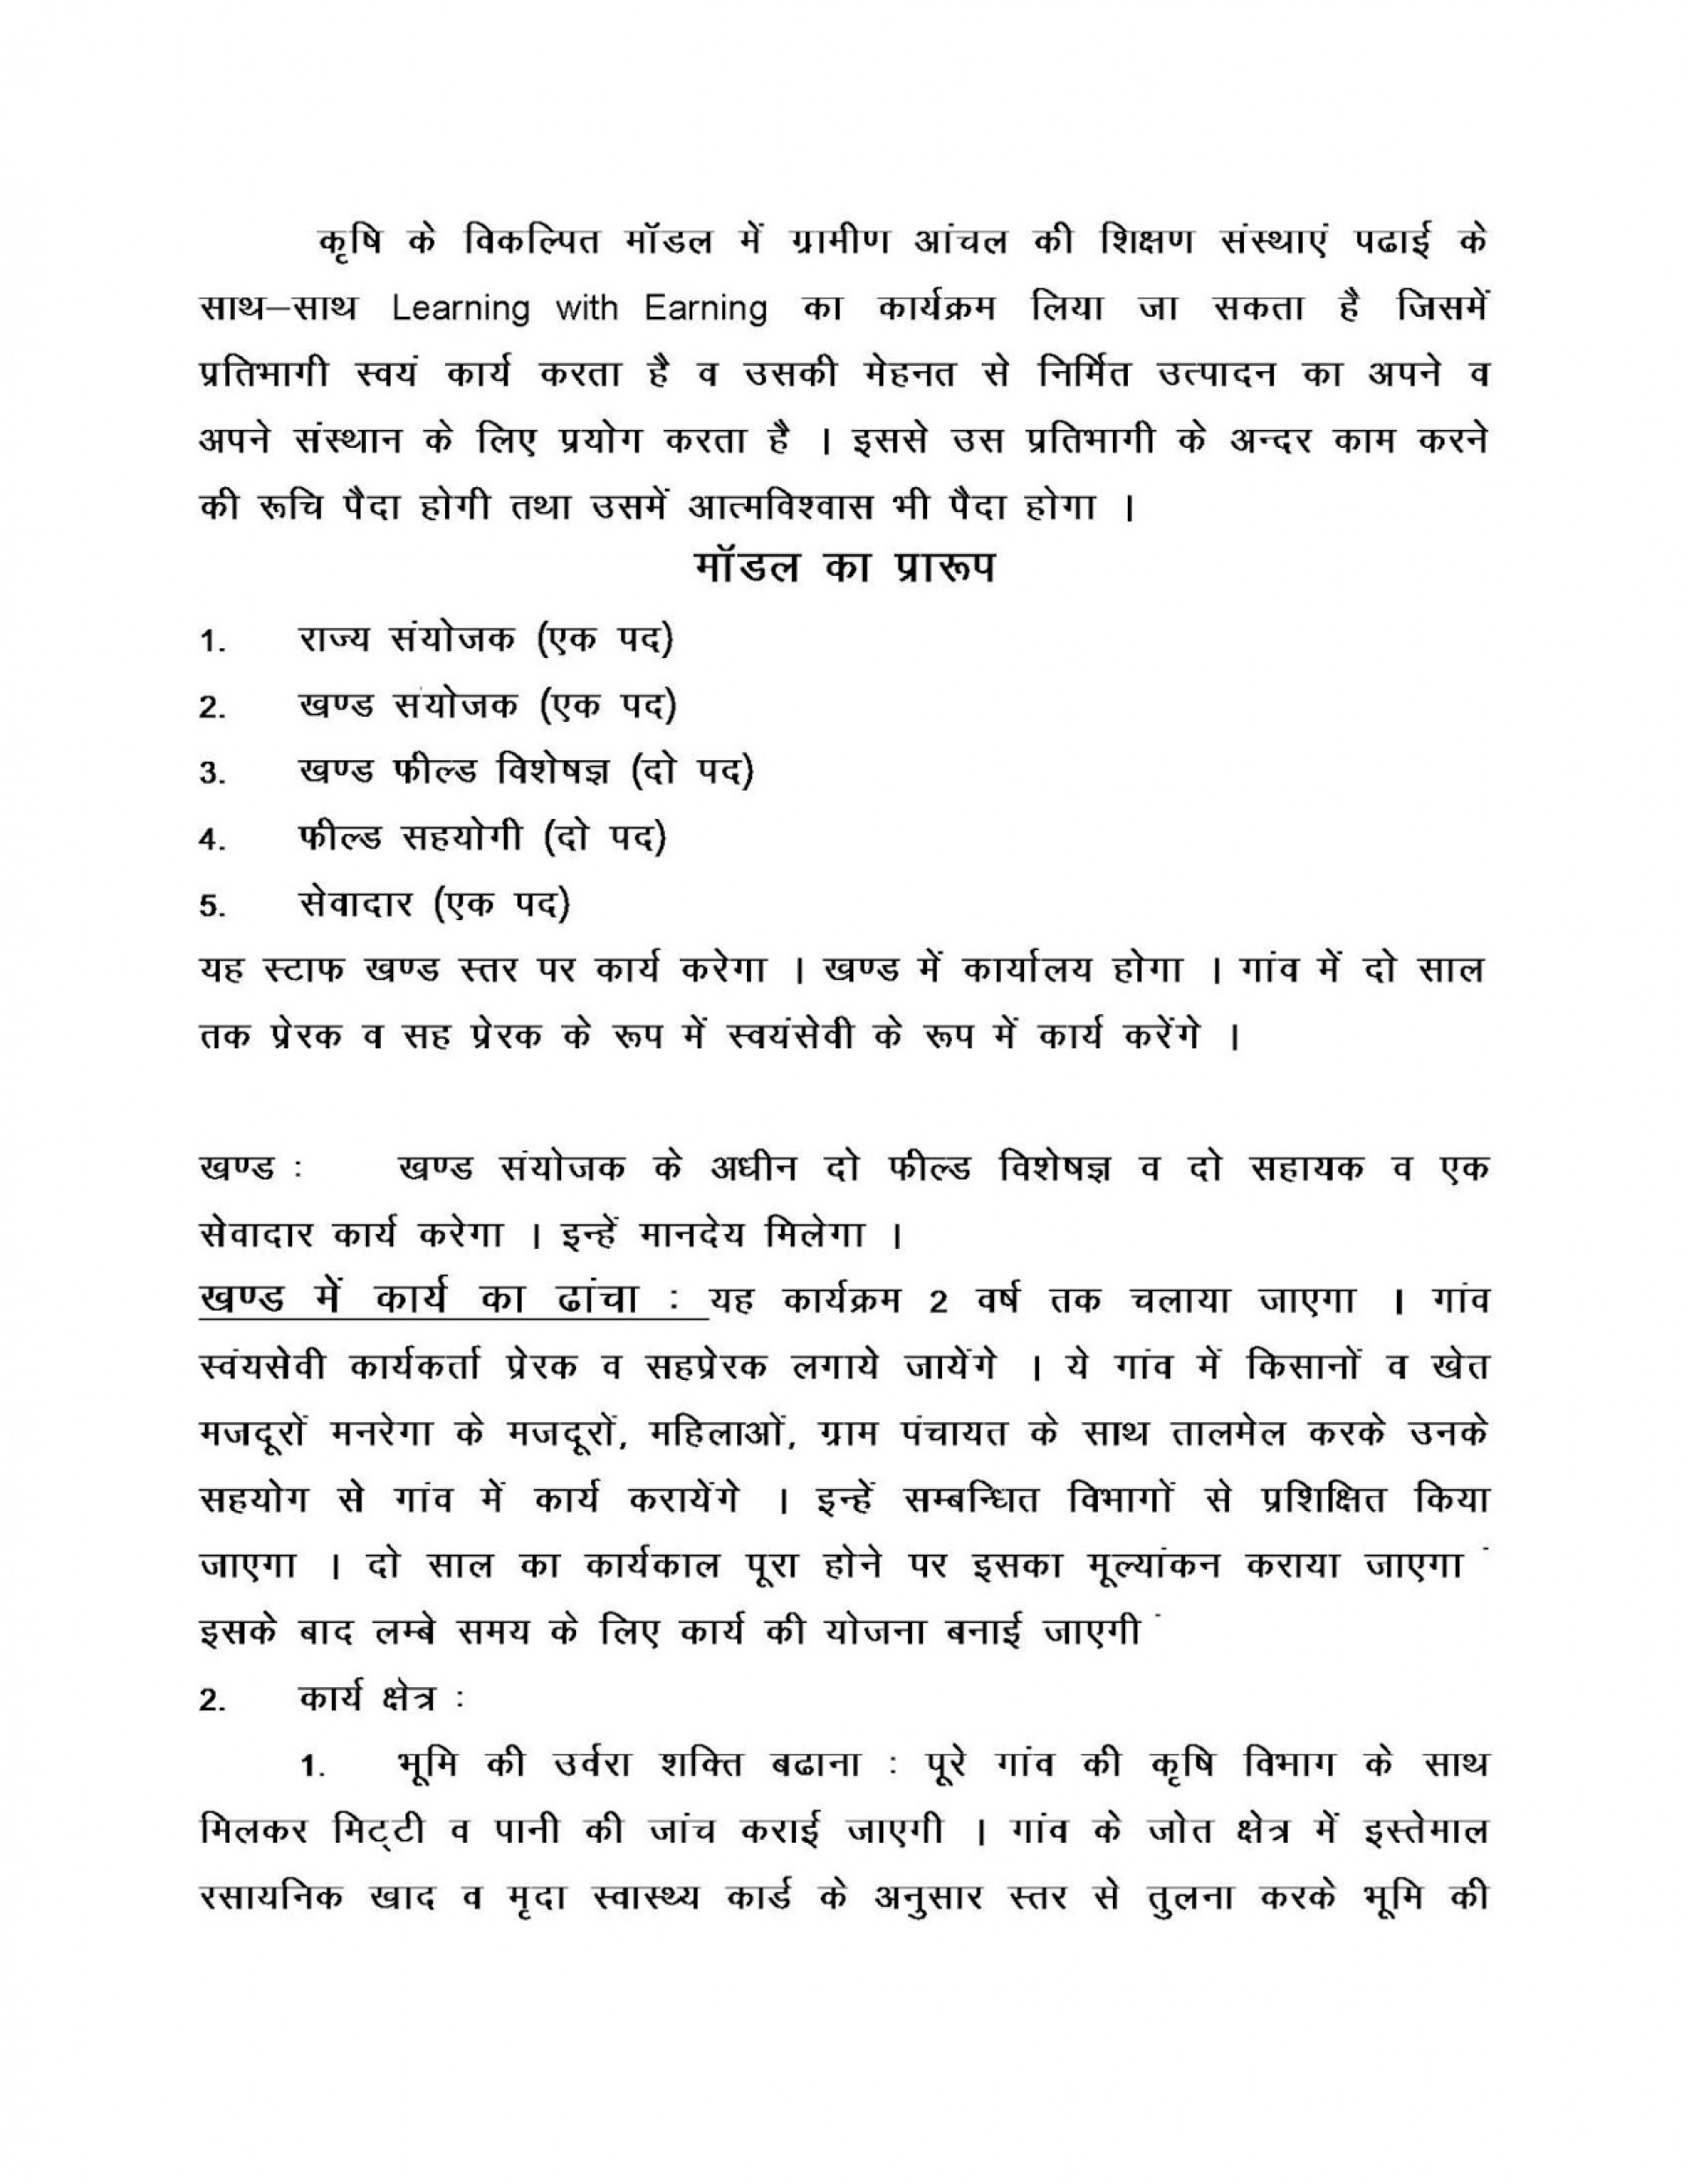 005 Hindi252bwork252bdr 252brajinder252bsingh Page 8 Lyric Essay Unique Example Examples Analysis Song 1920